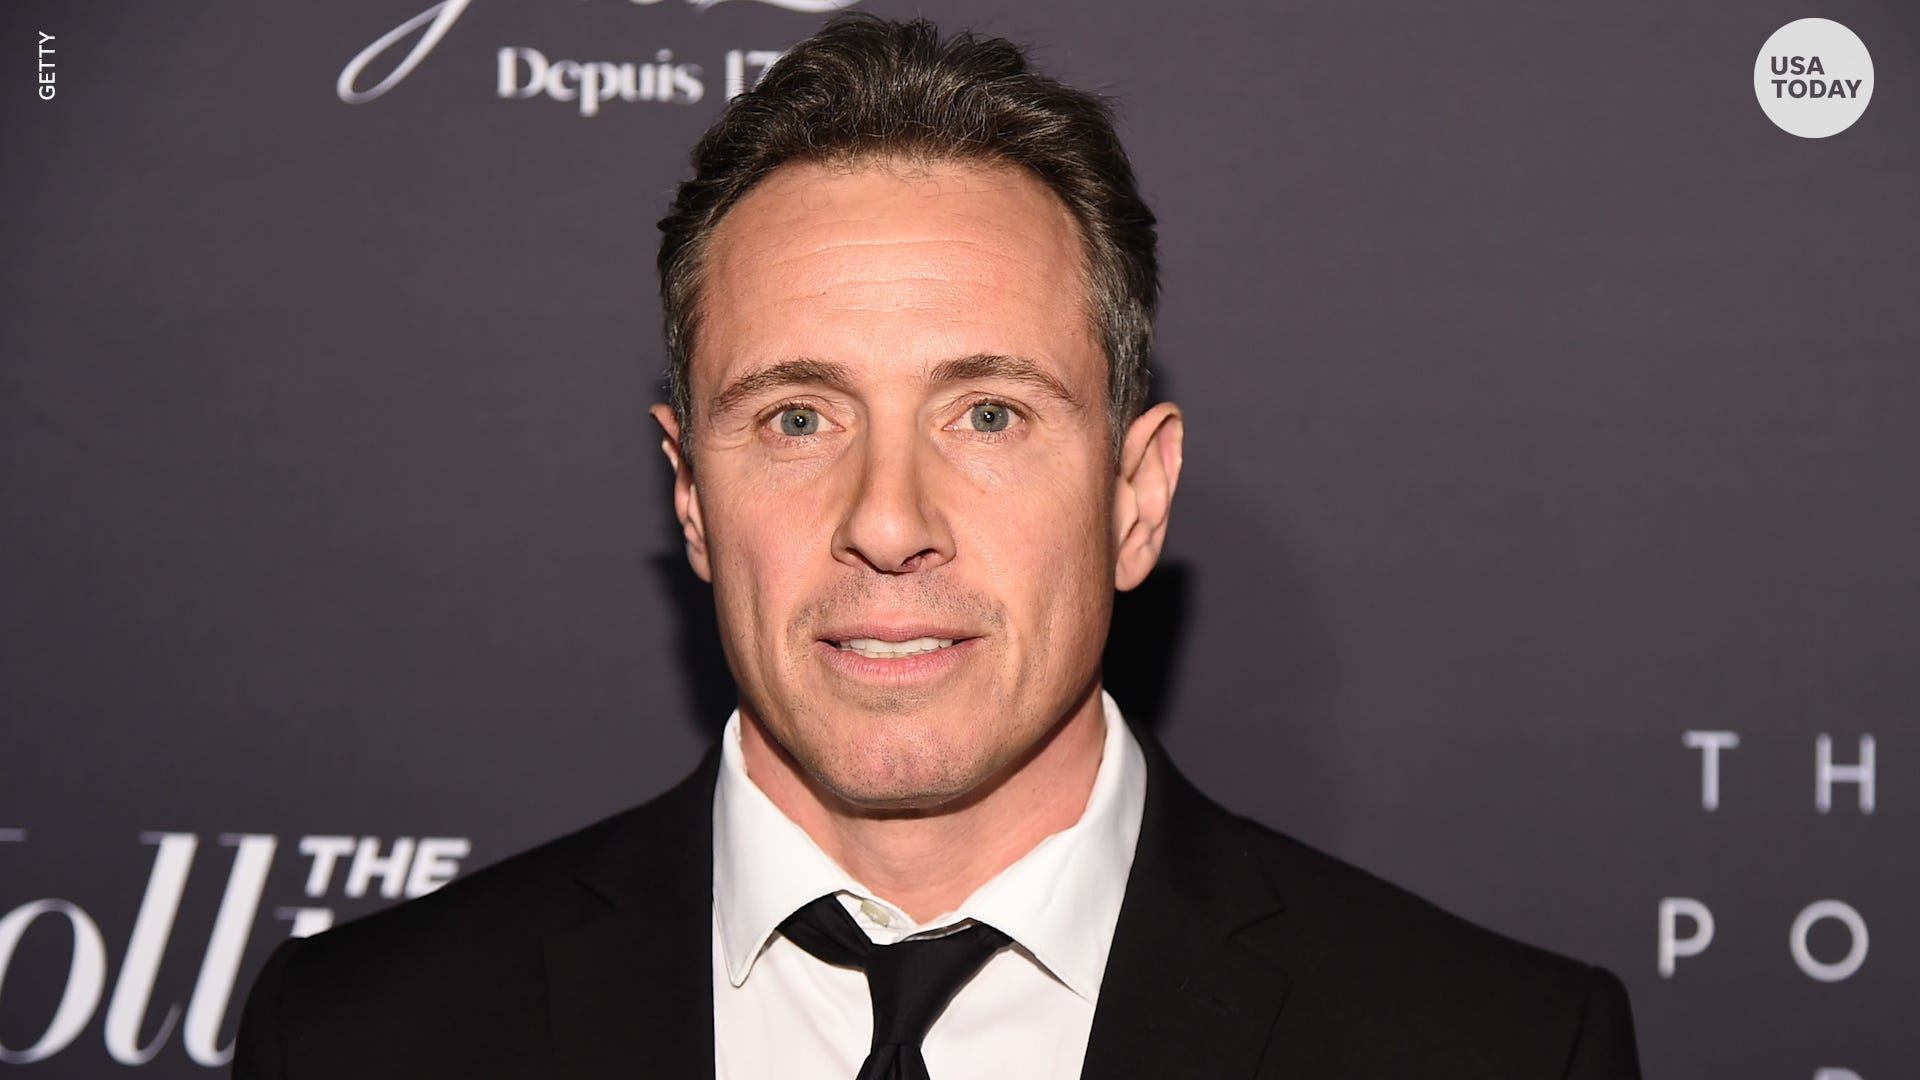 CNN anchor Chris Cuomo accused of sexual harassment by former ABC manager from 2005